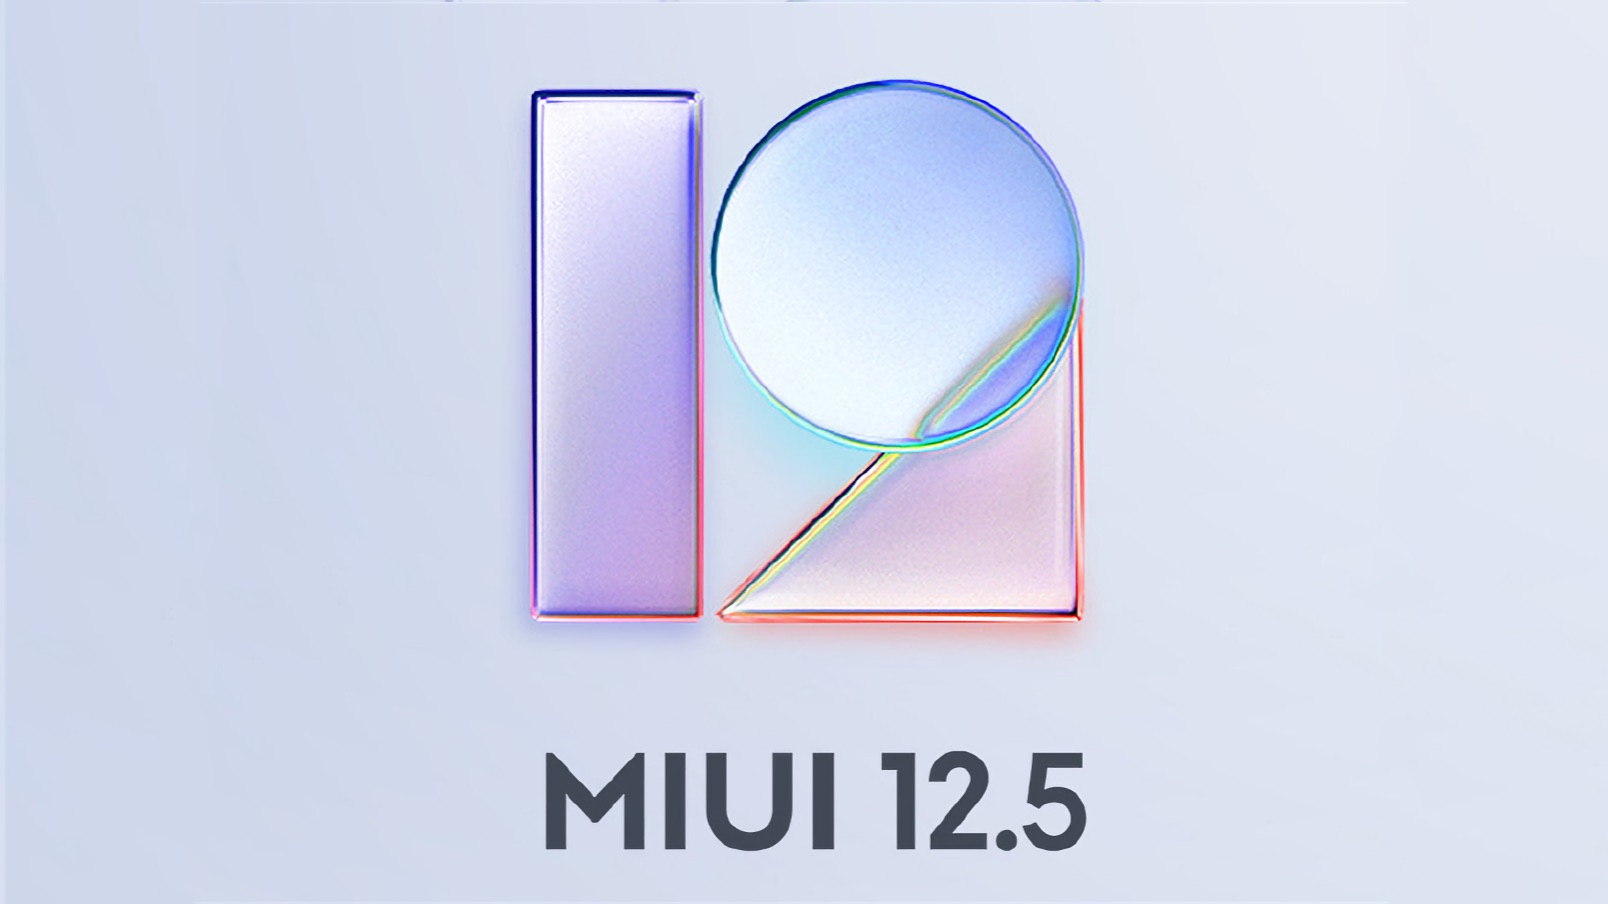 MIUI 12.5 round-up: Xiaomi's latest OS reaches over 35 devices